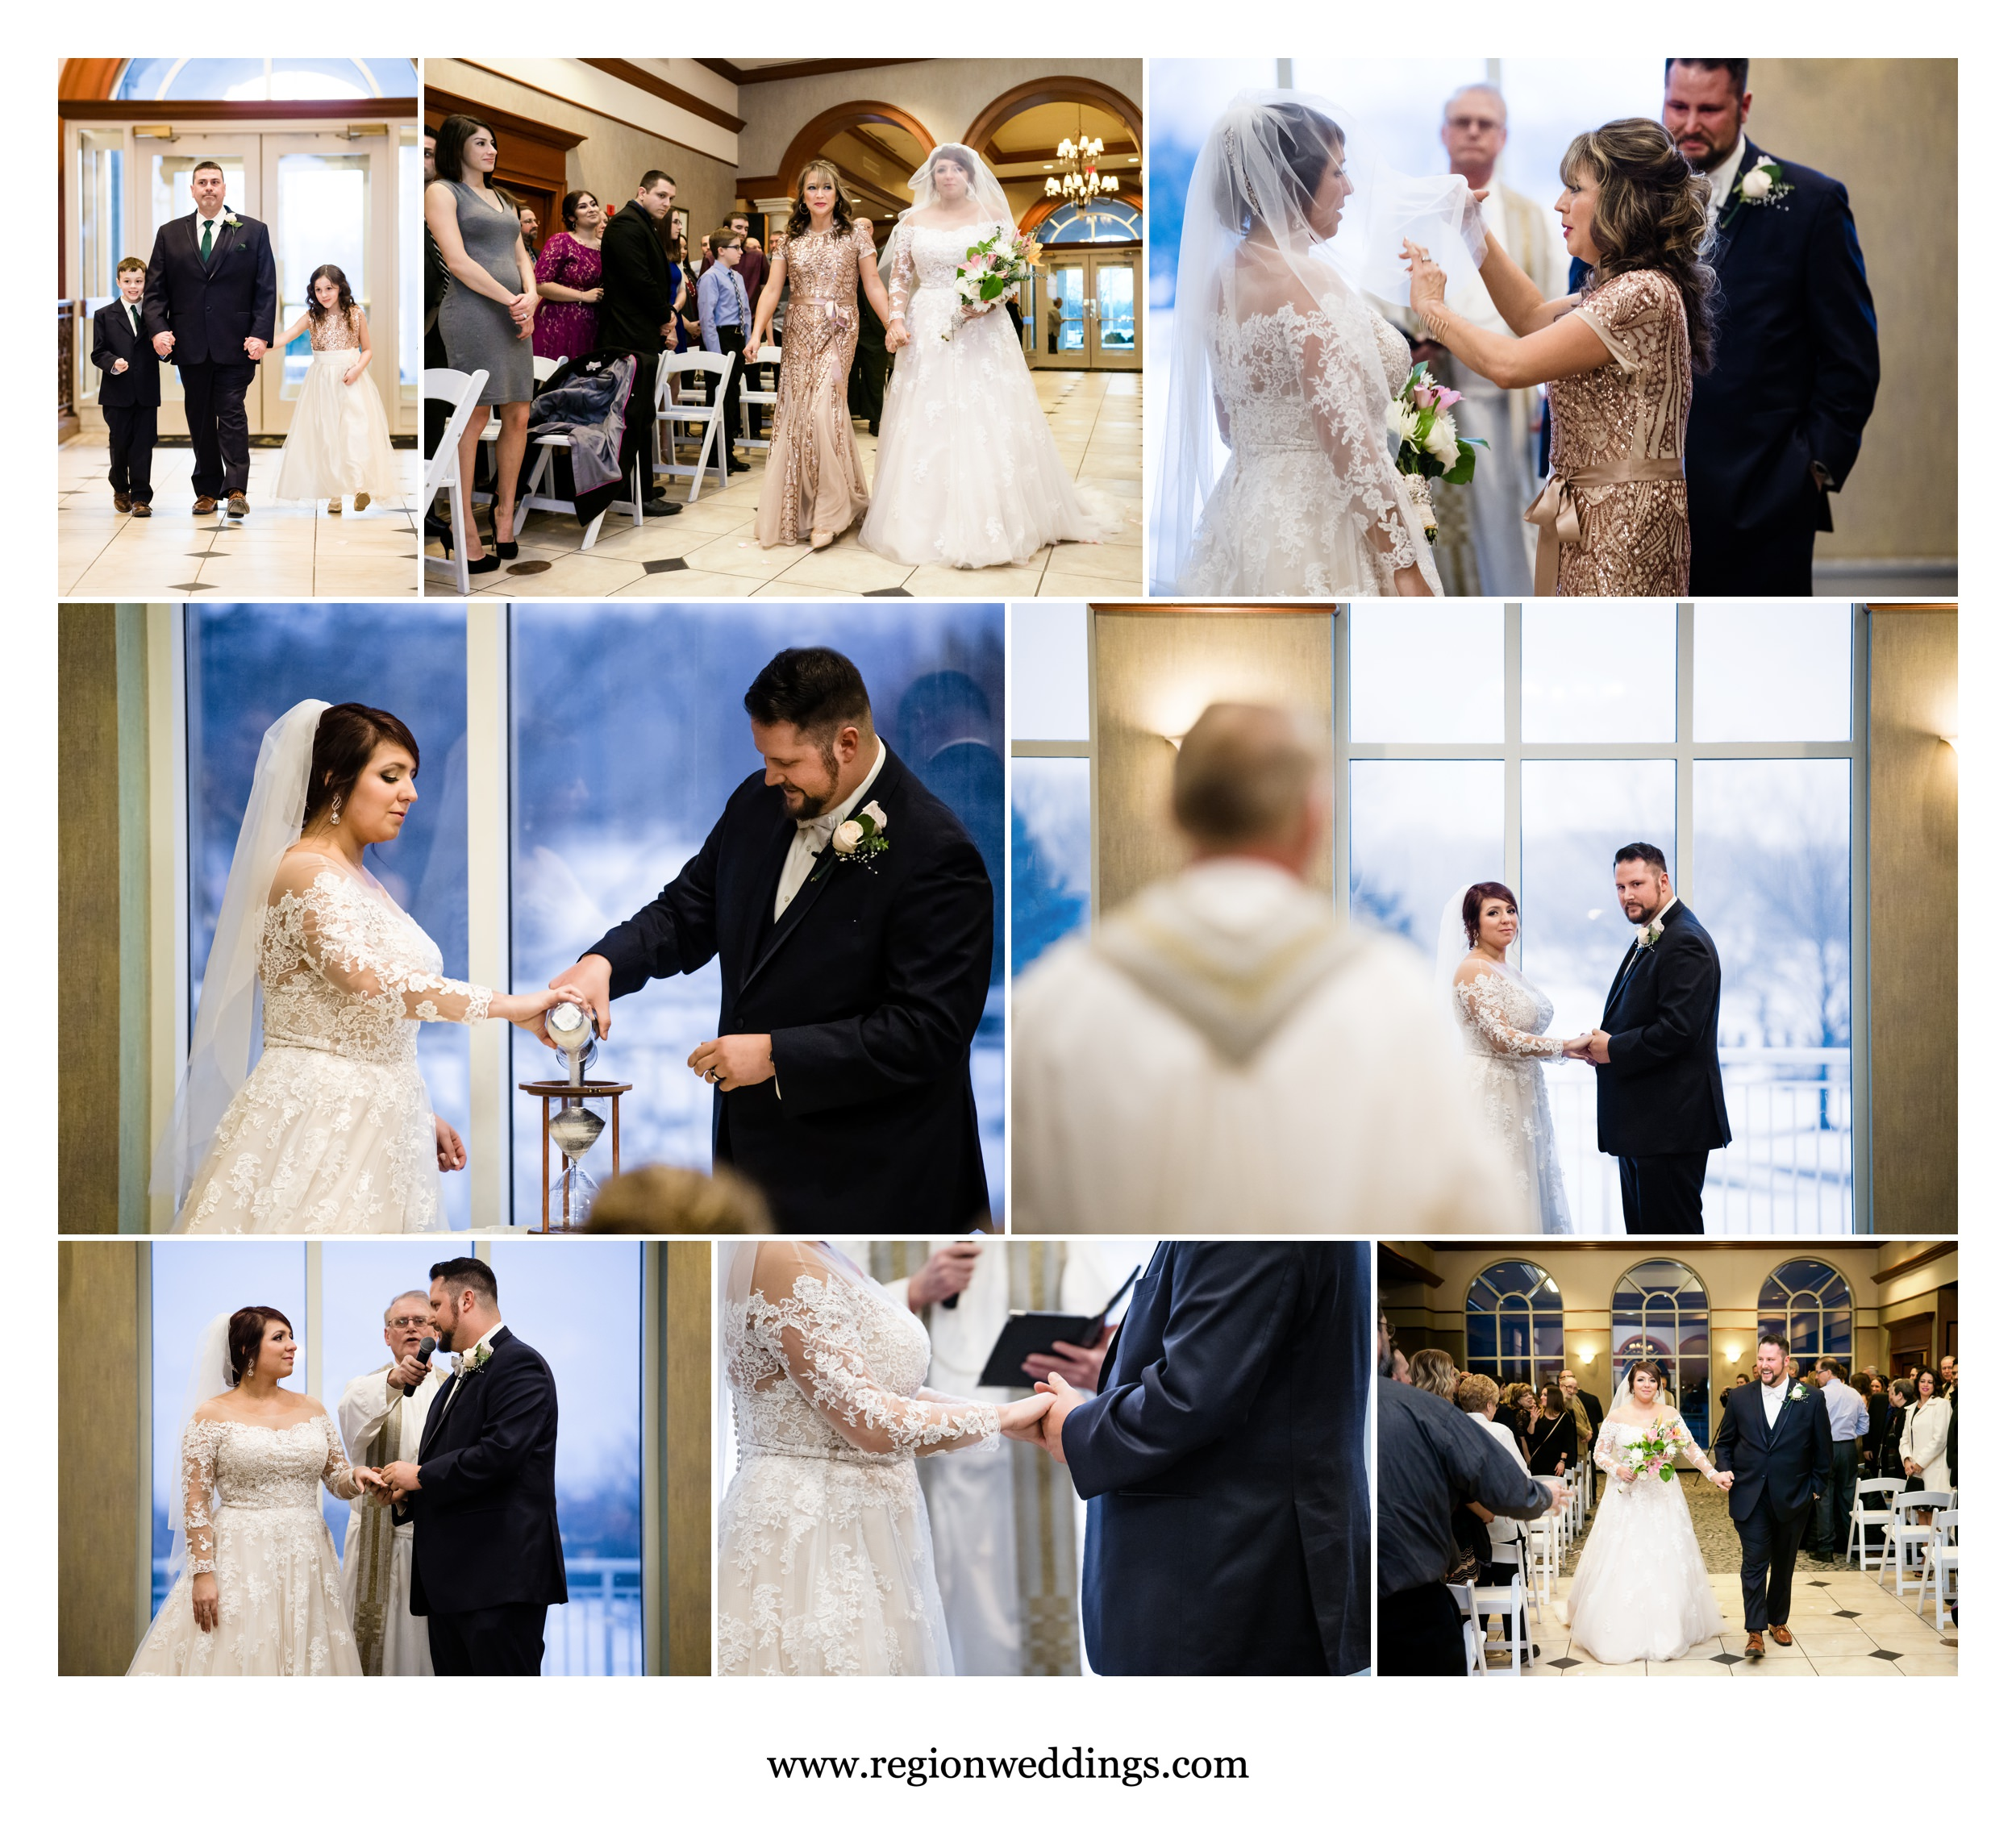 Indoor winter wedding ceremony at Sand Creek Country Club.